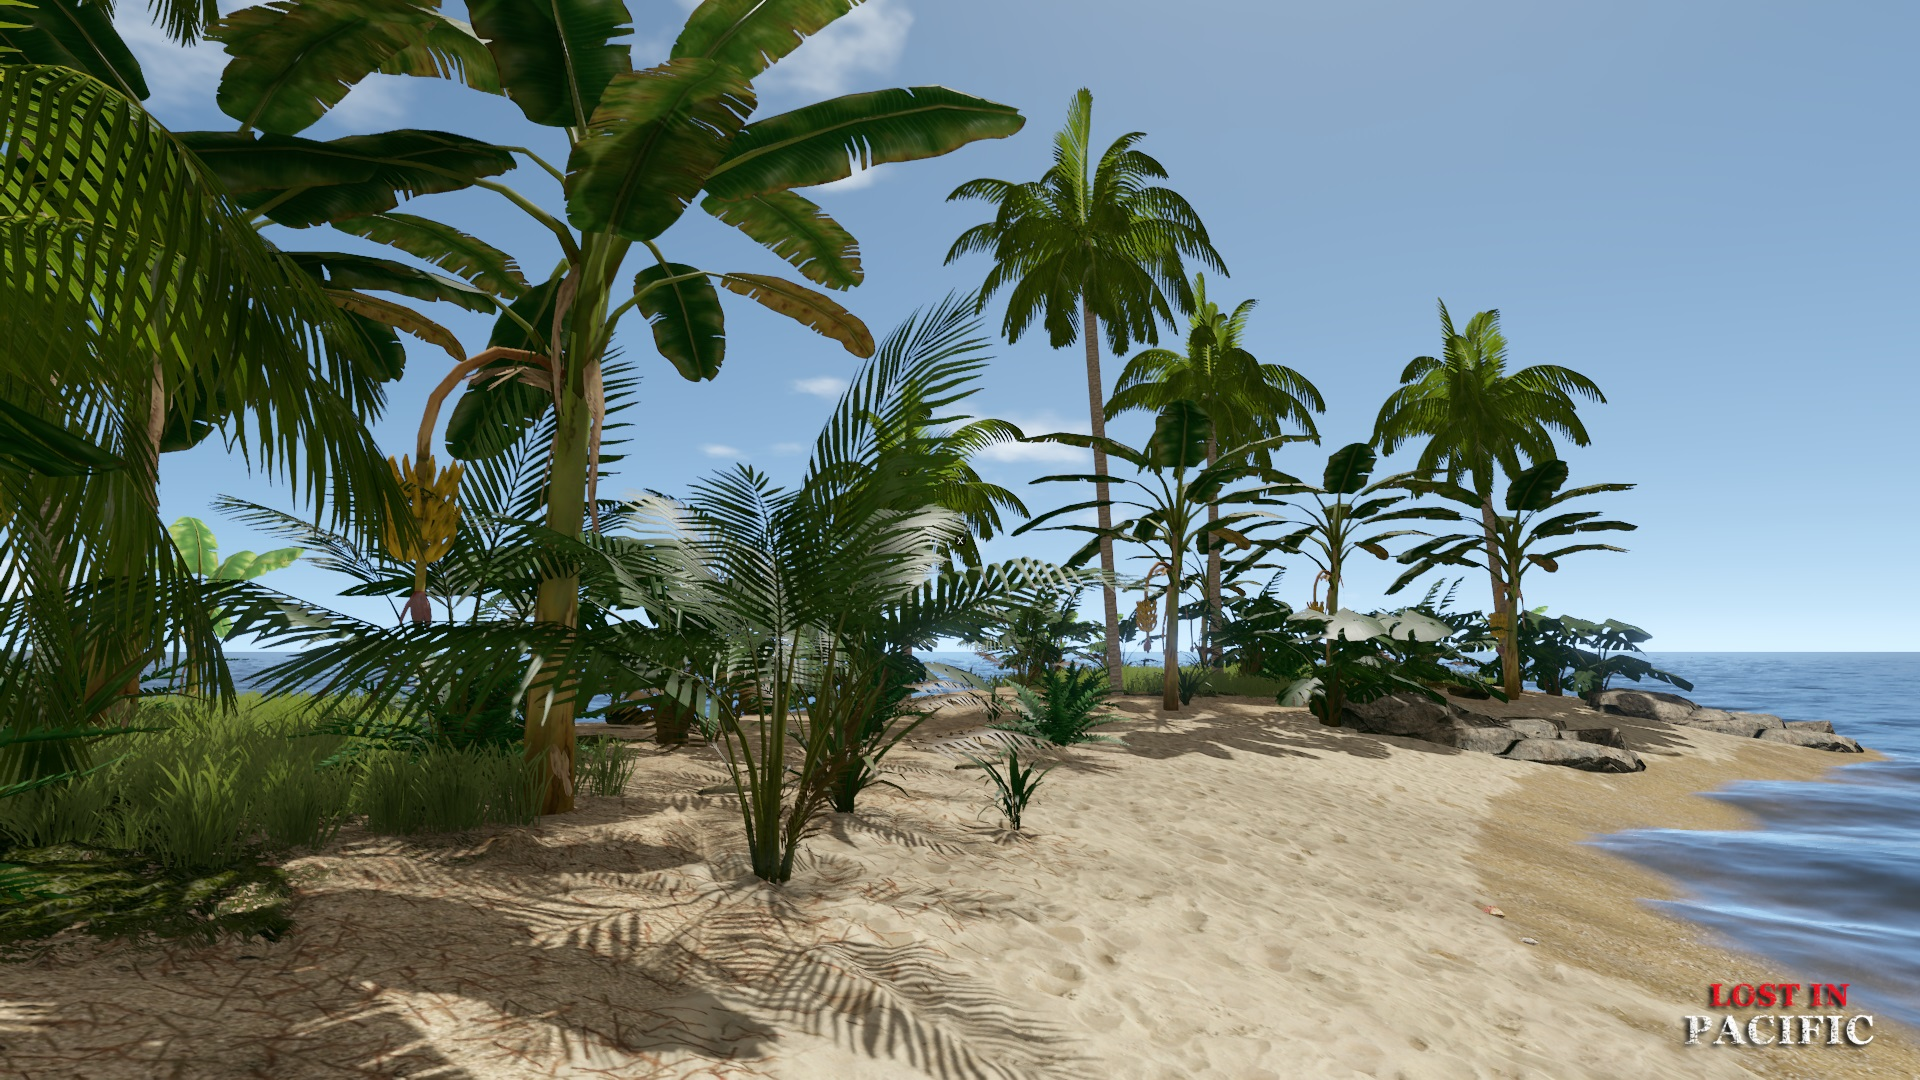 LiP_Screenshot_Island2